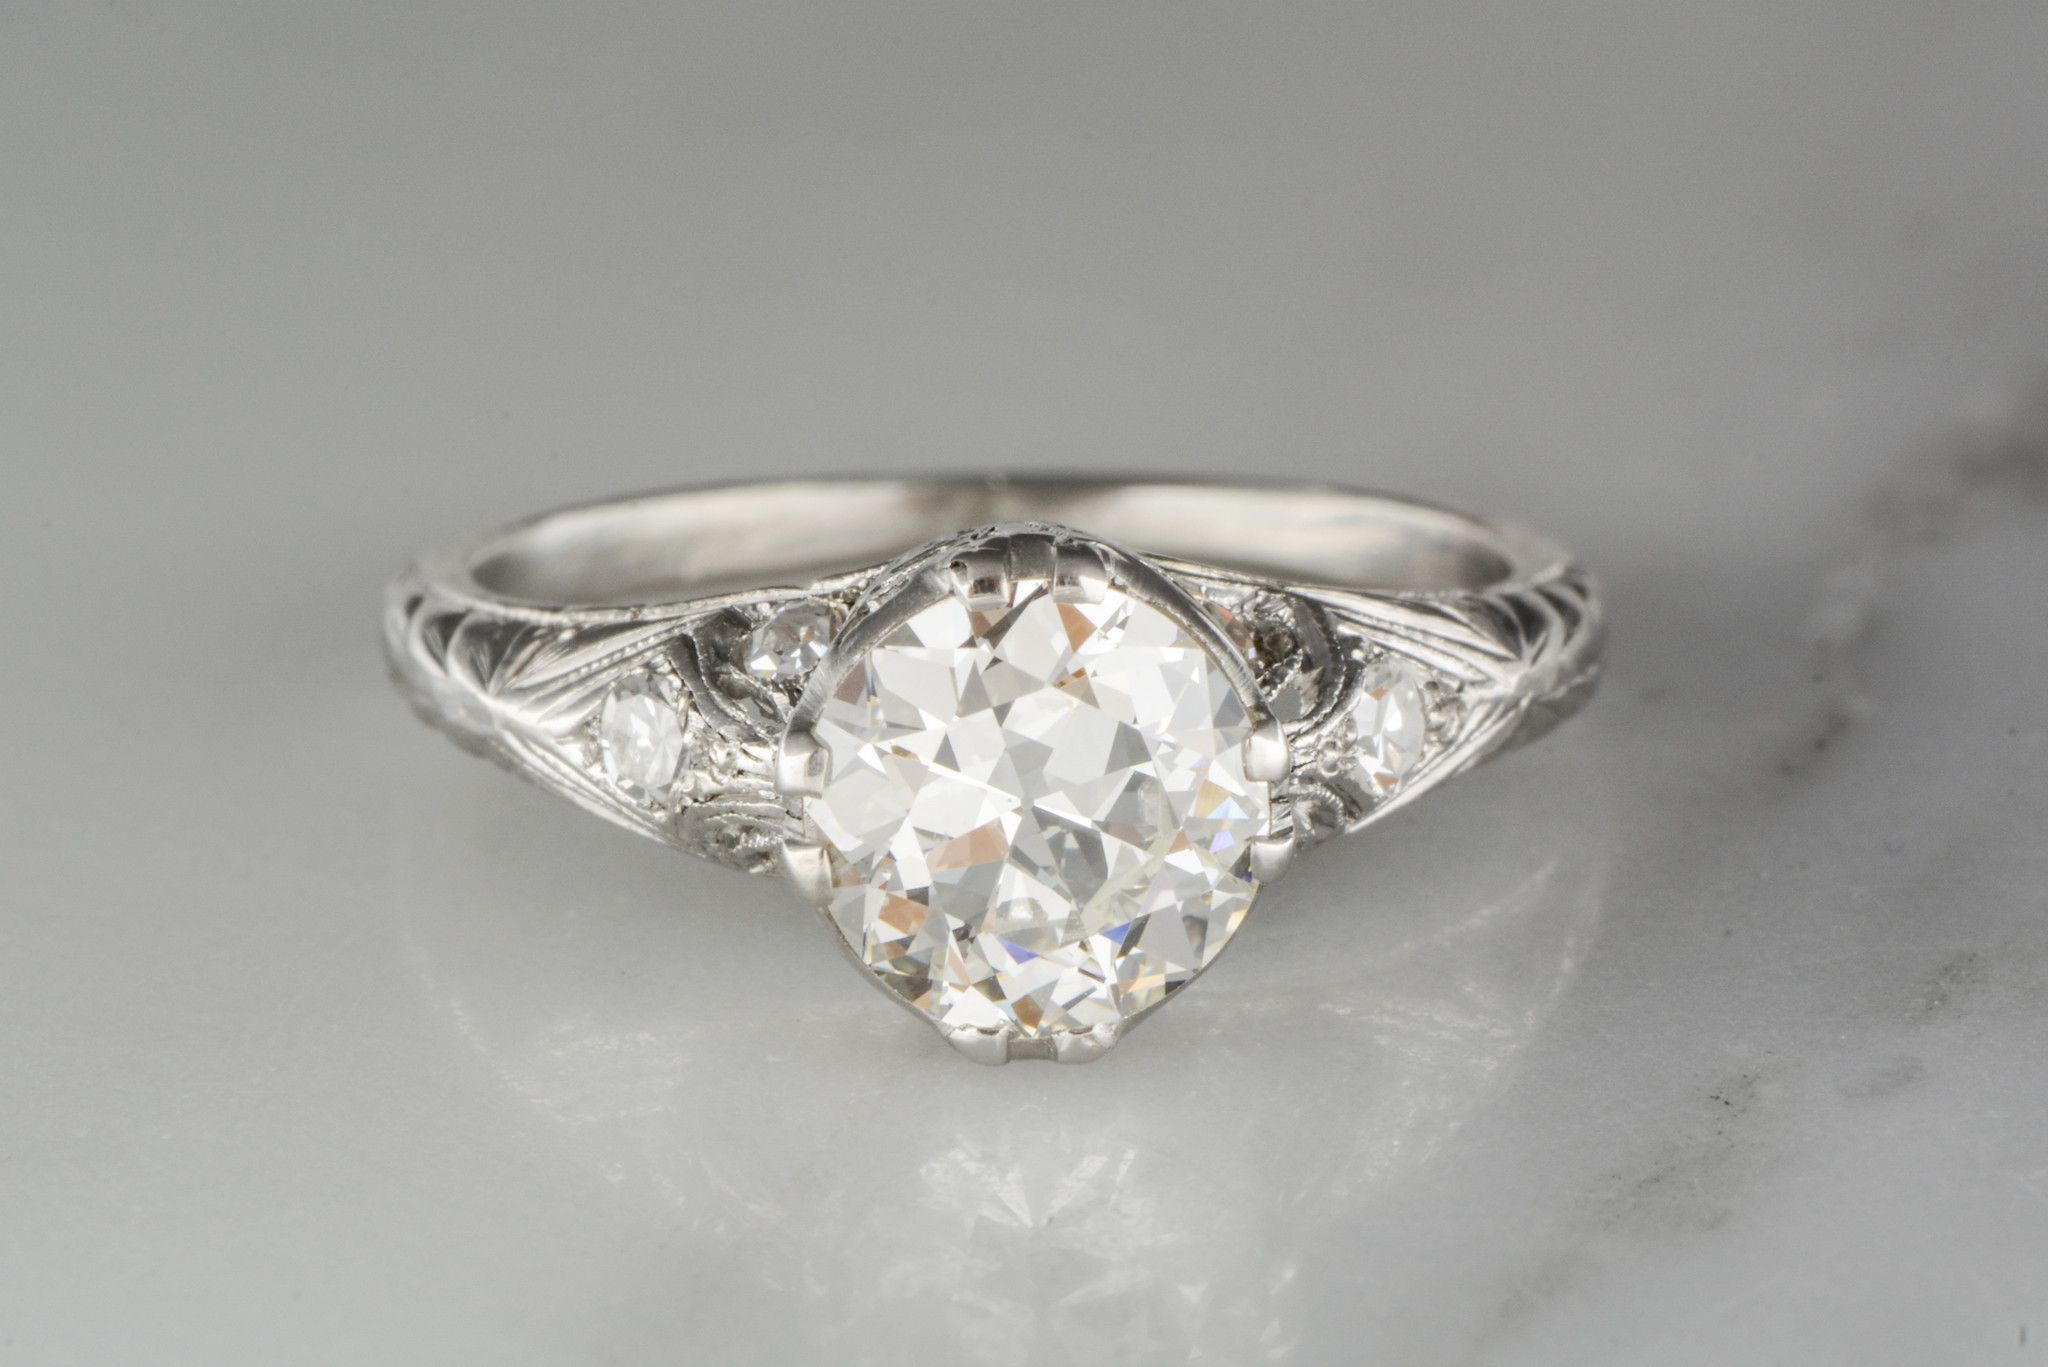 5c97018cd G.I.A. Certified .98 Carat Old European Cut Diamond in a Platinum Edwardian  Engagement Ring with .22 Carats…